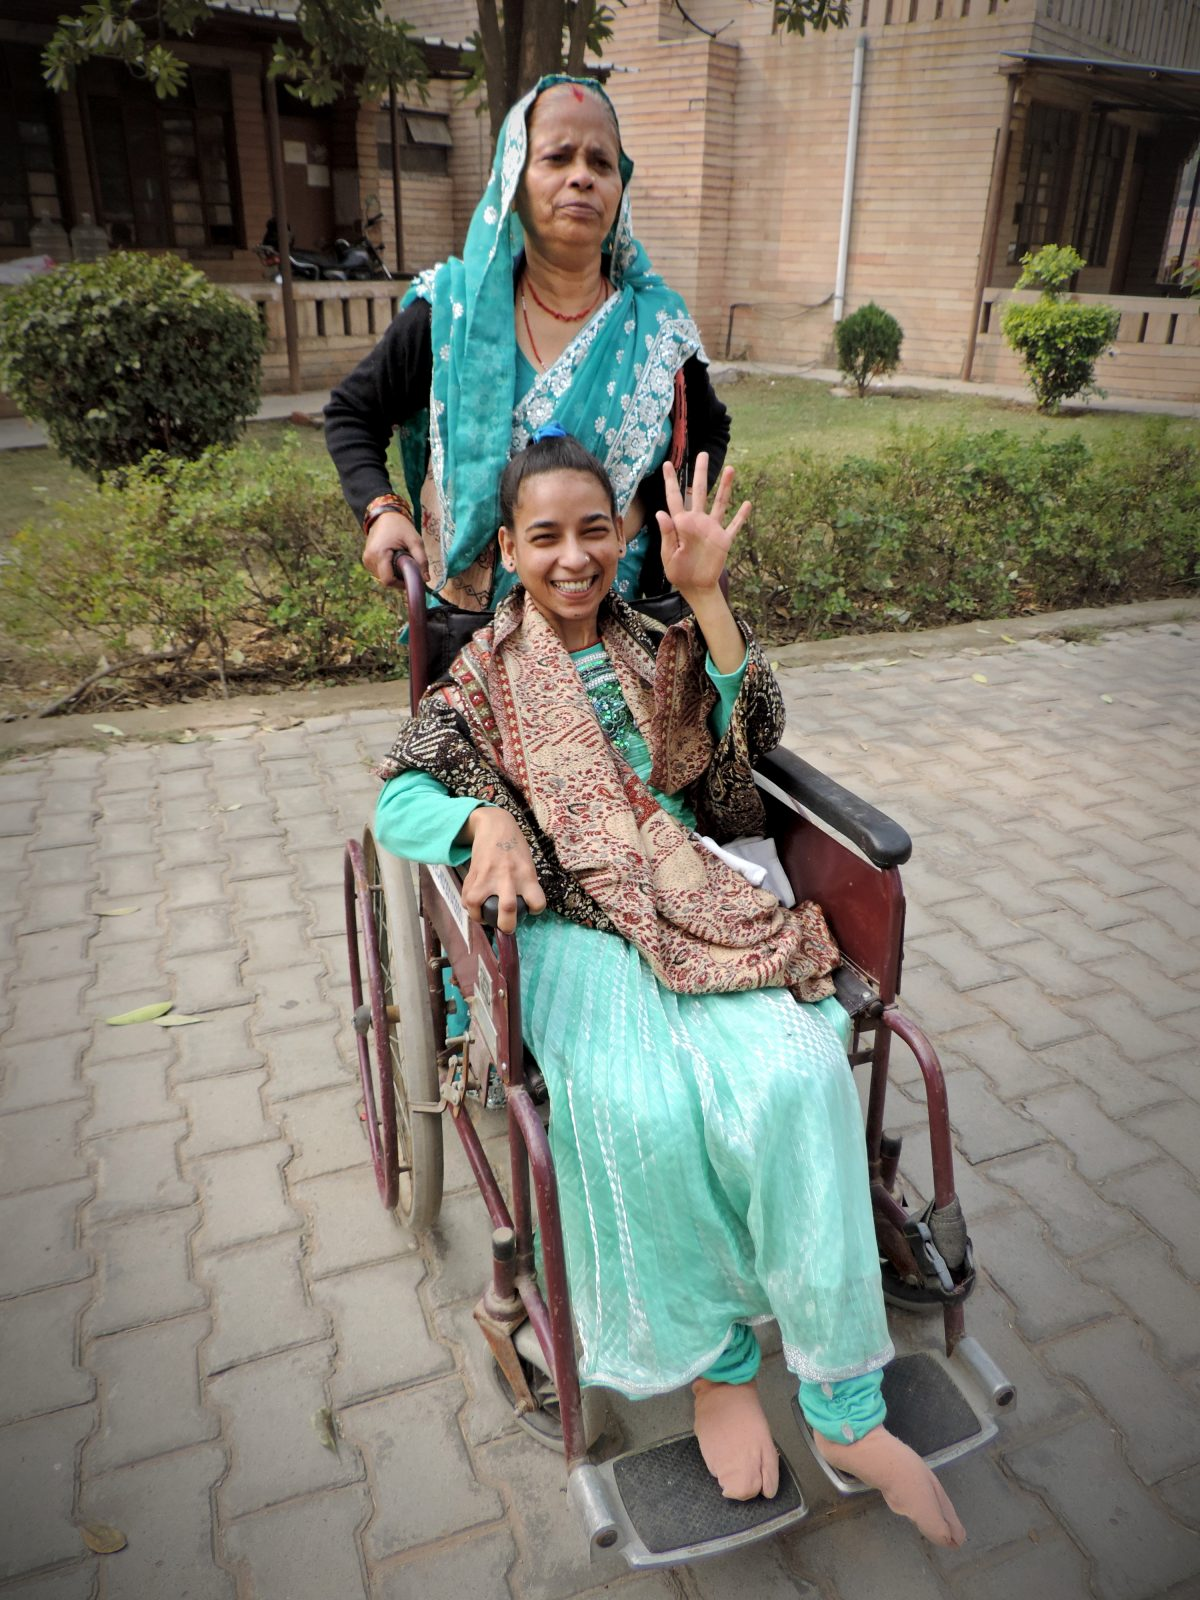 TBI Blogs: Cerebral Palsy Can Be Debilitating for Many, but 19-Year-Old Anmol Has Refused to Accept Defeat